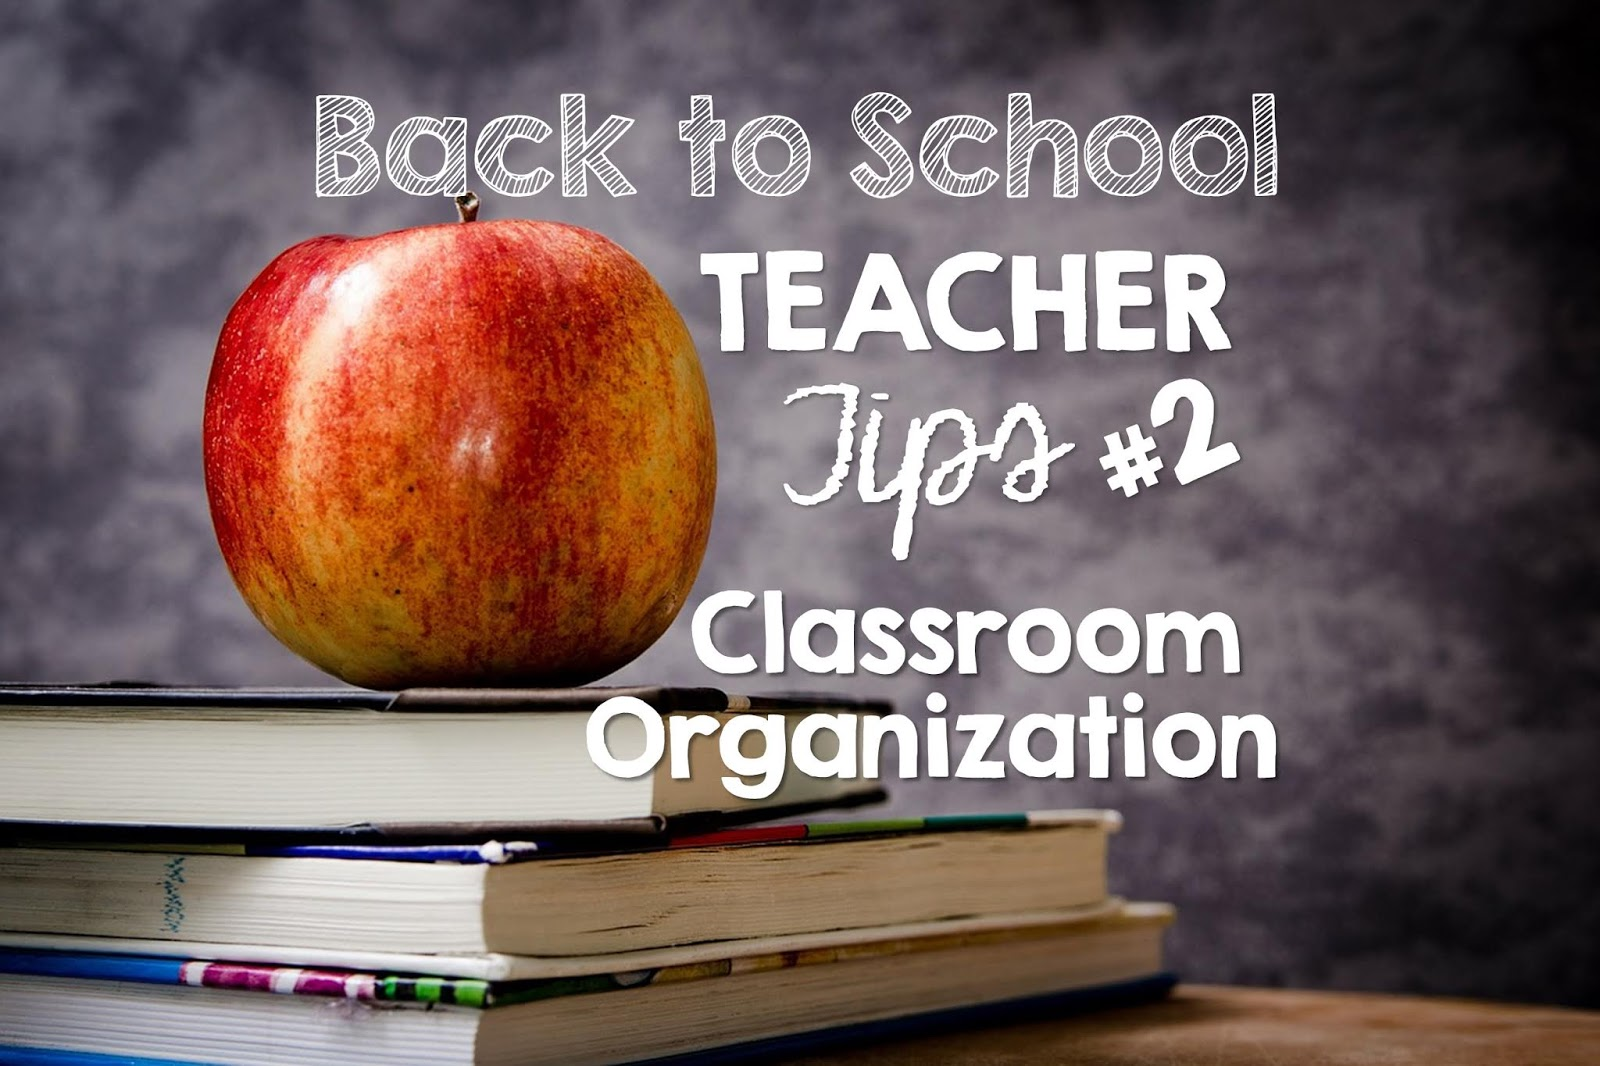 Tips for organizing your classroom for back to school with elementary teachers